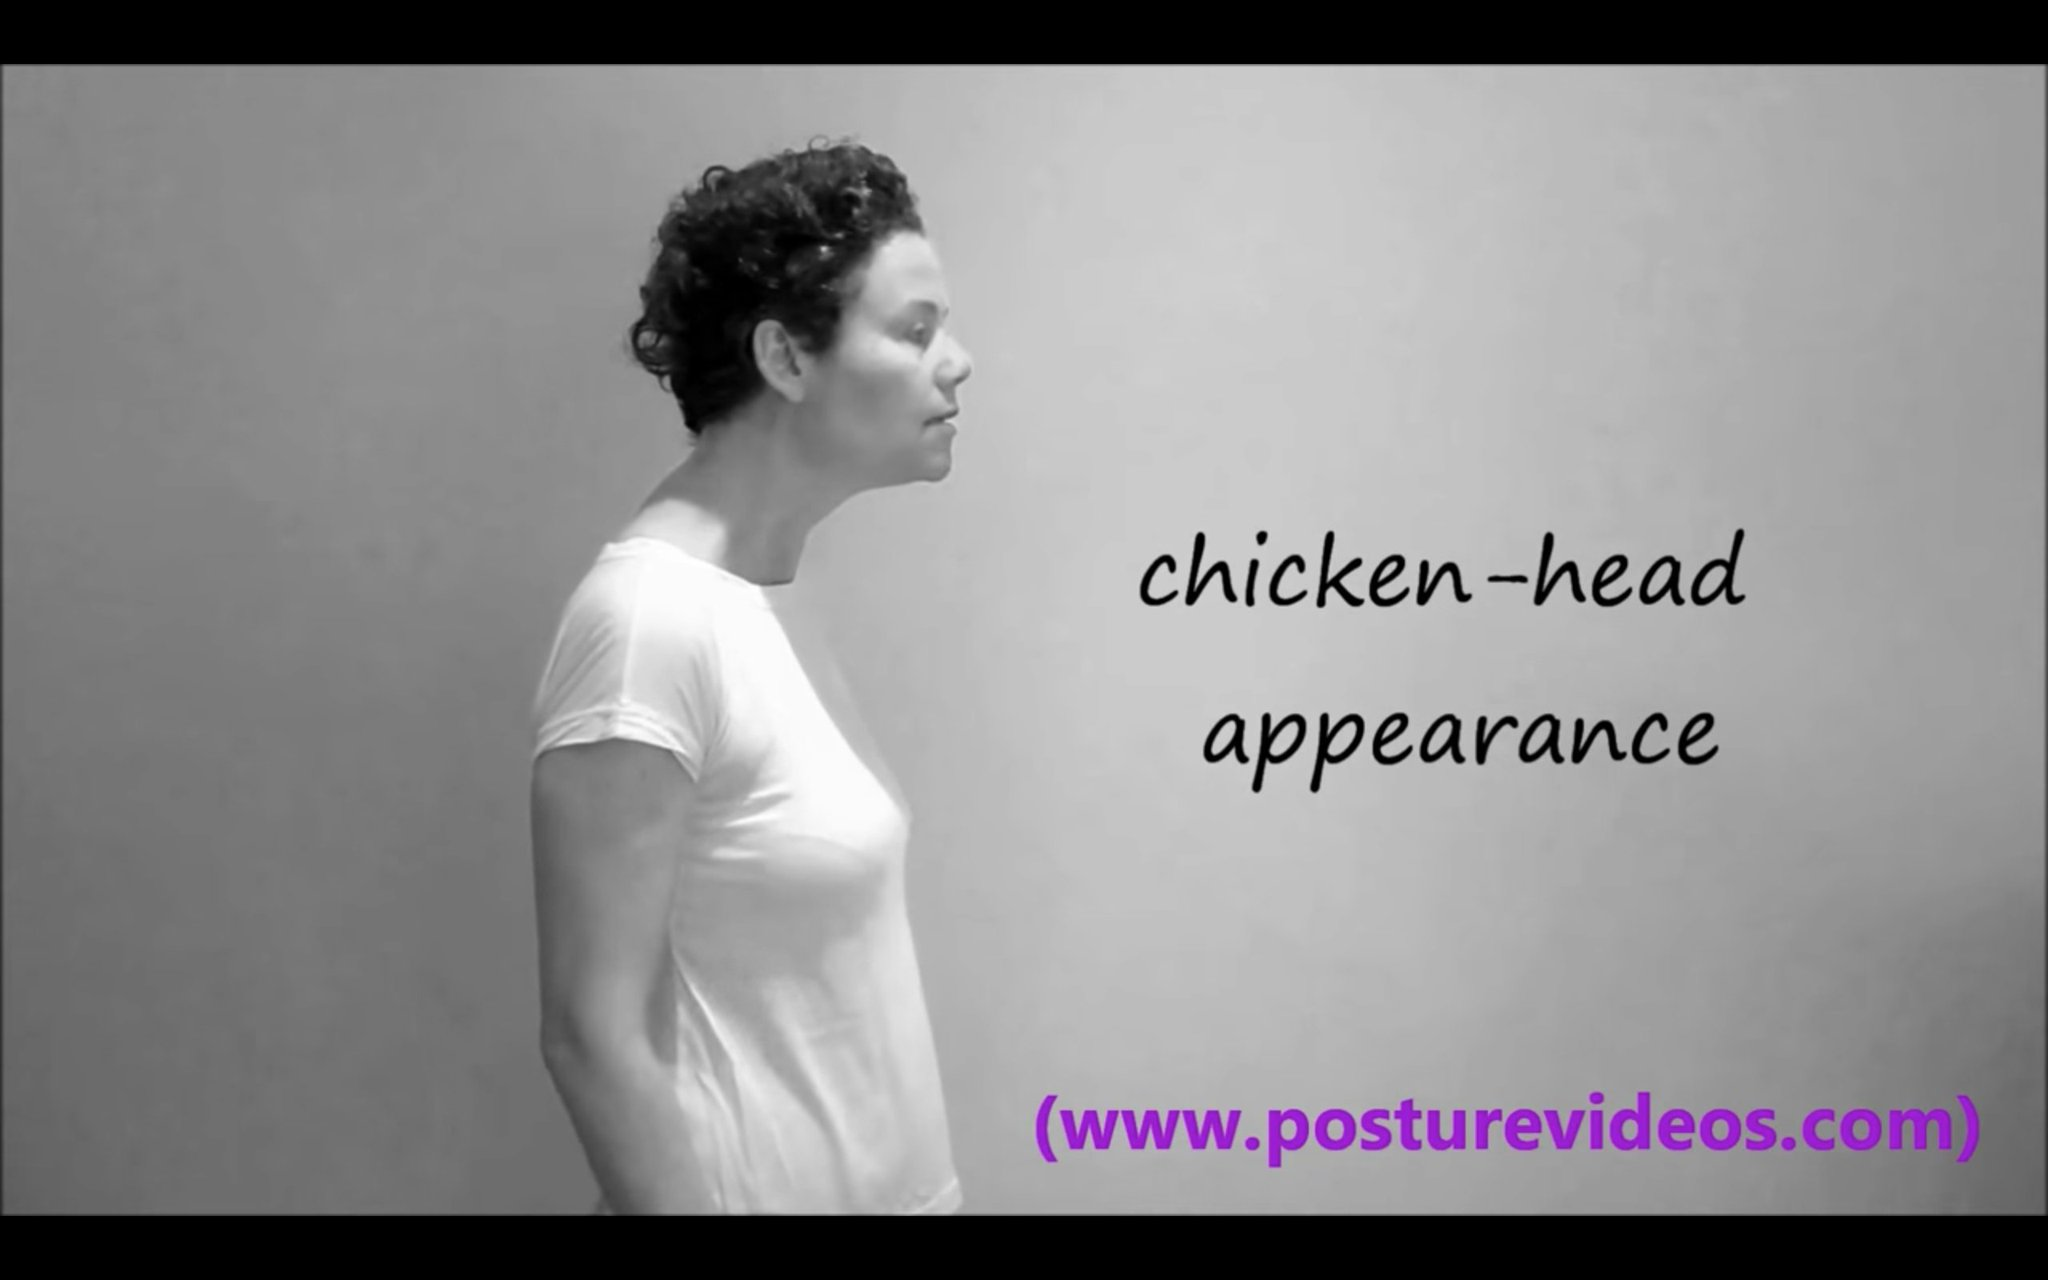 Fix your forward neck posture with these easy stretches: https://t.co/RS62B00s8F https://t.co/MIYBiTJEVS